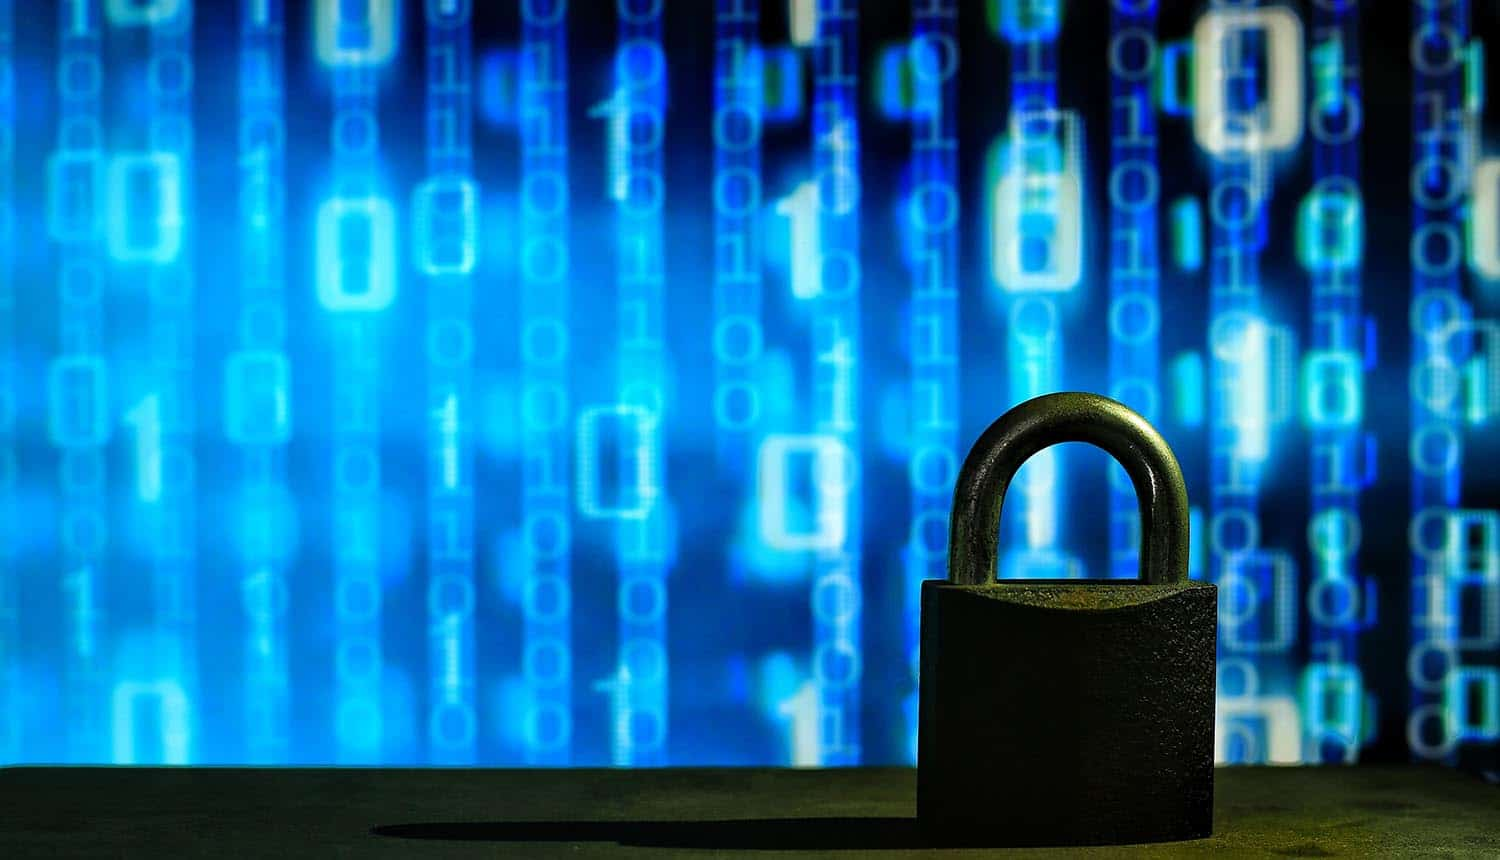 Closed padlock in front of blue floating binary code showing need for data security